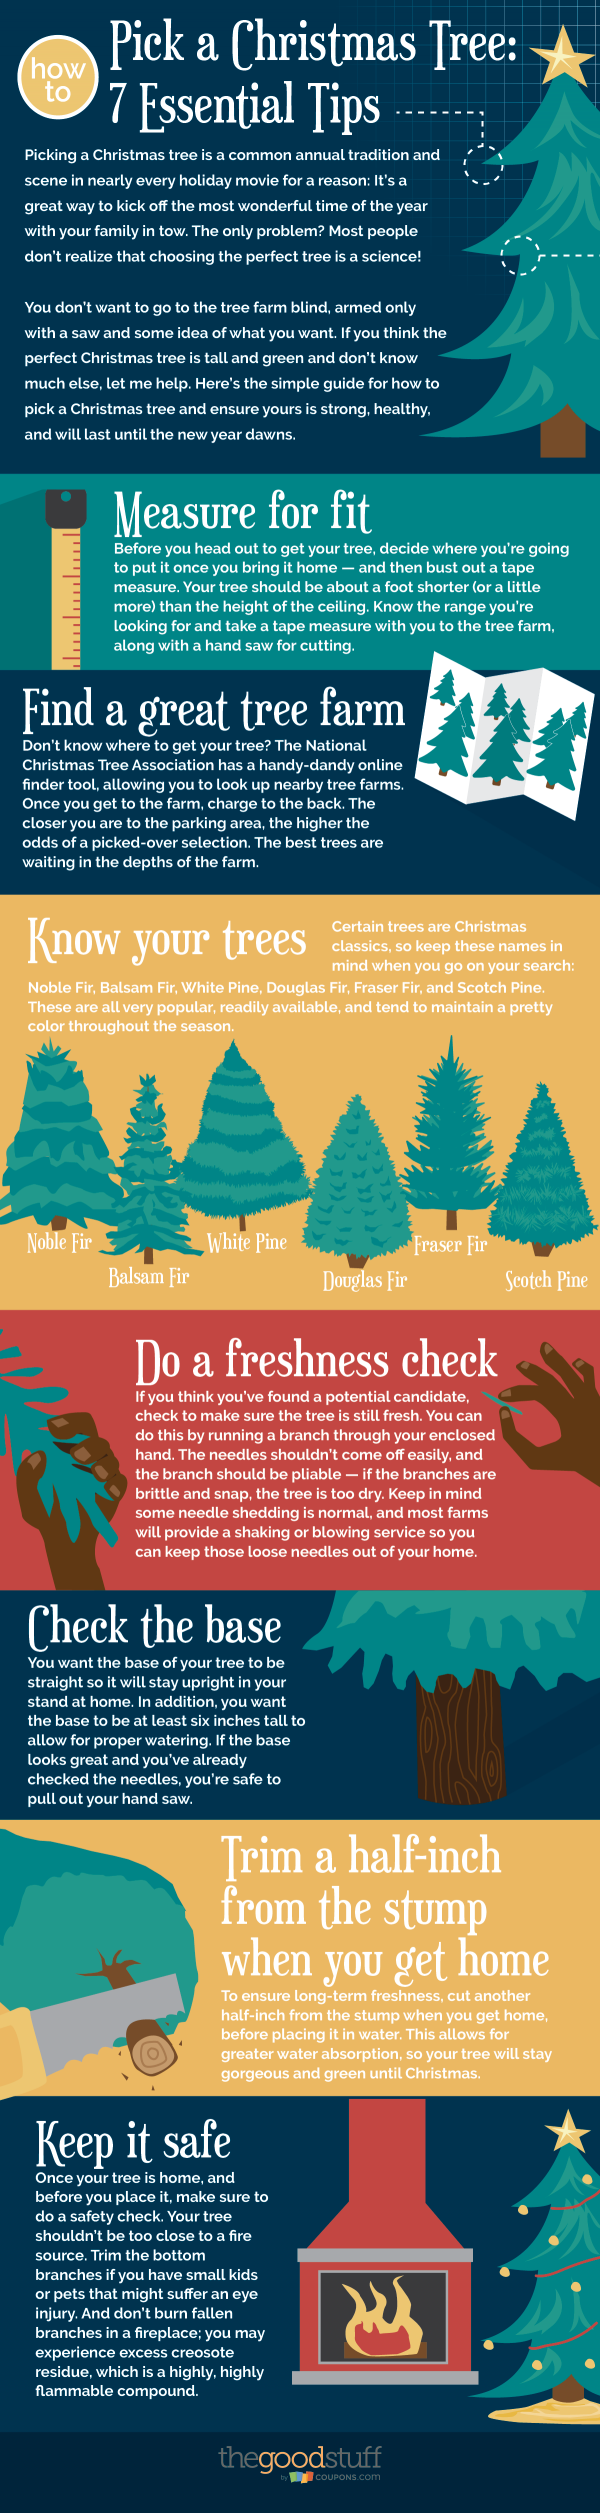 How To Pick A Christmas Tree 7 Essential Tips Coupons Com Fresh Christmas Trees Christmas Decorations For Kids Christmas Crafts For Adults